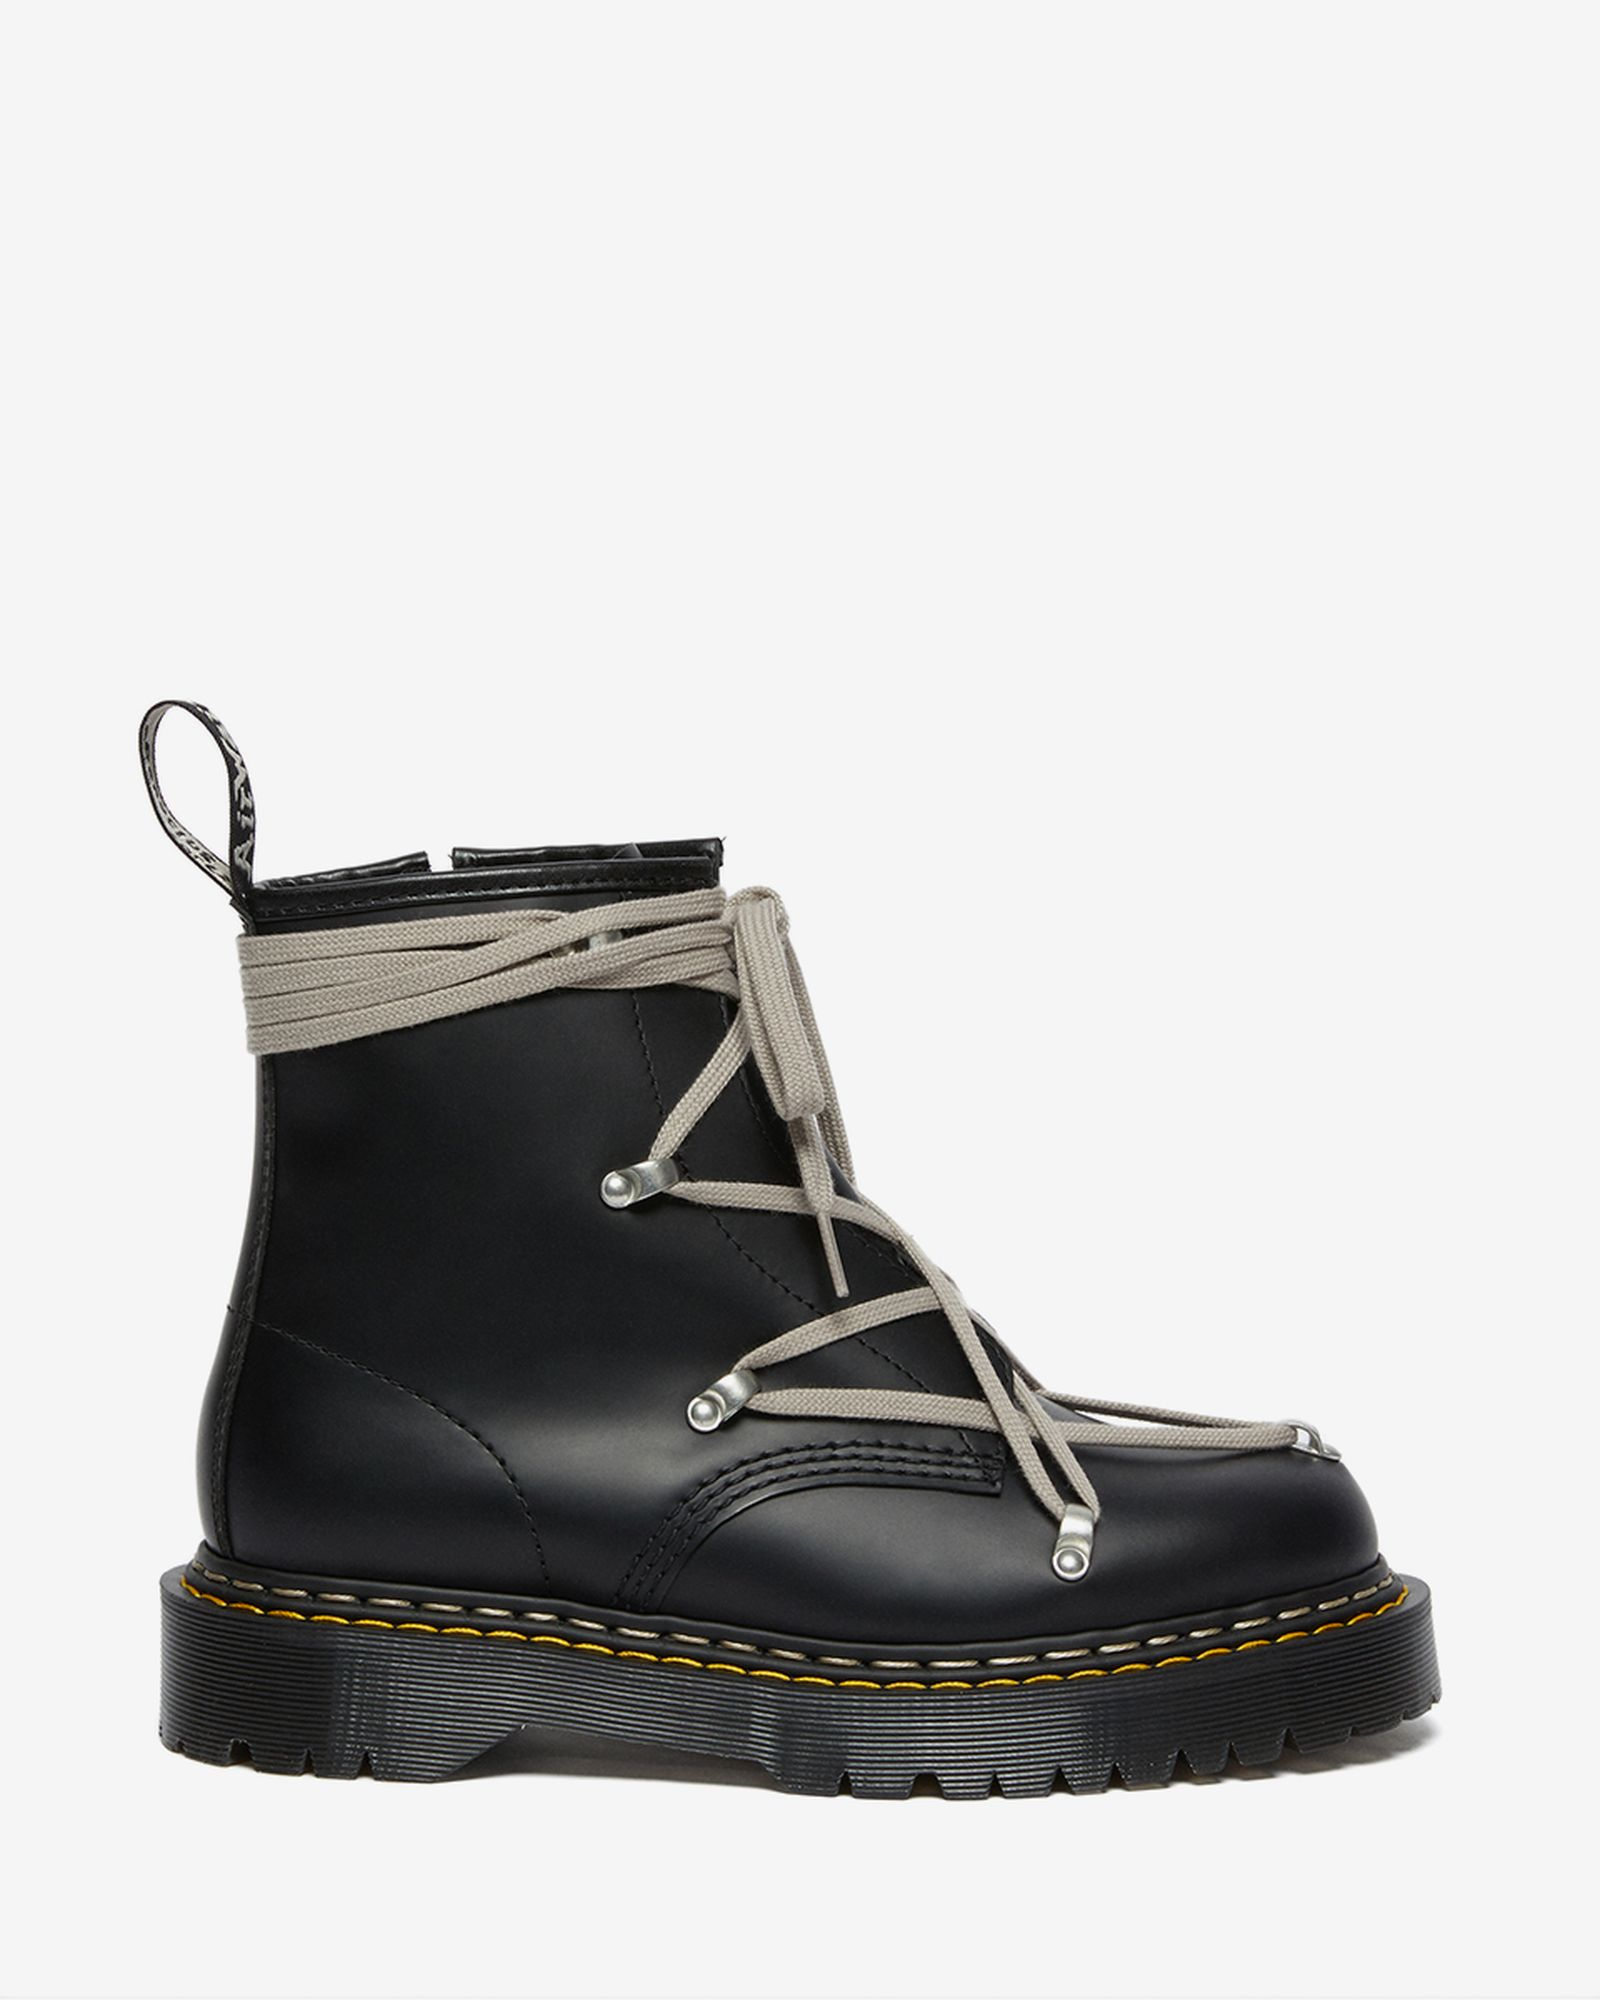 rick-owens-dr-martens-1460-bex-release-date-price-06